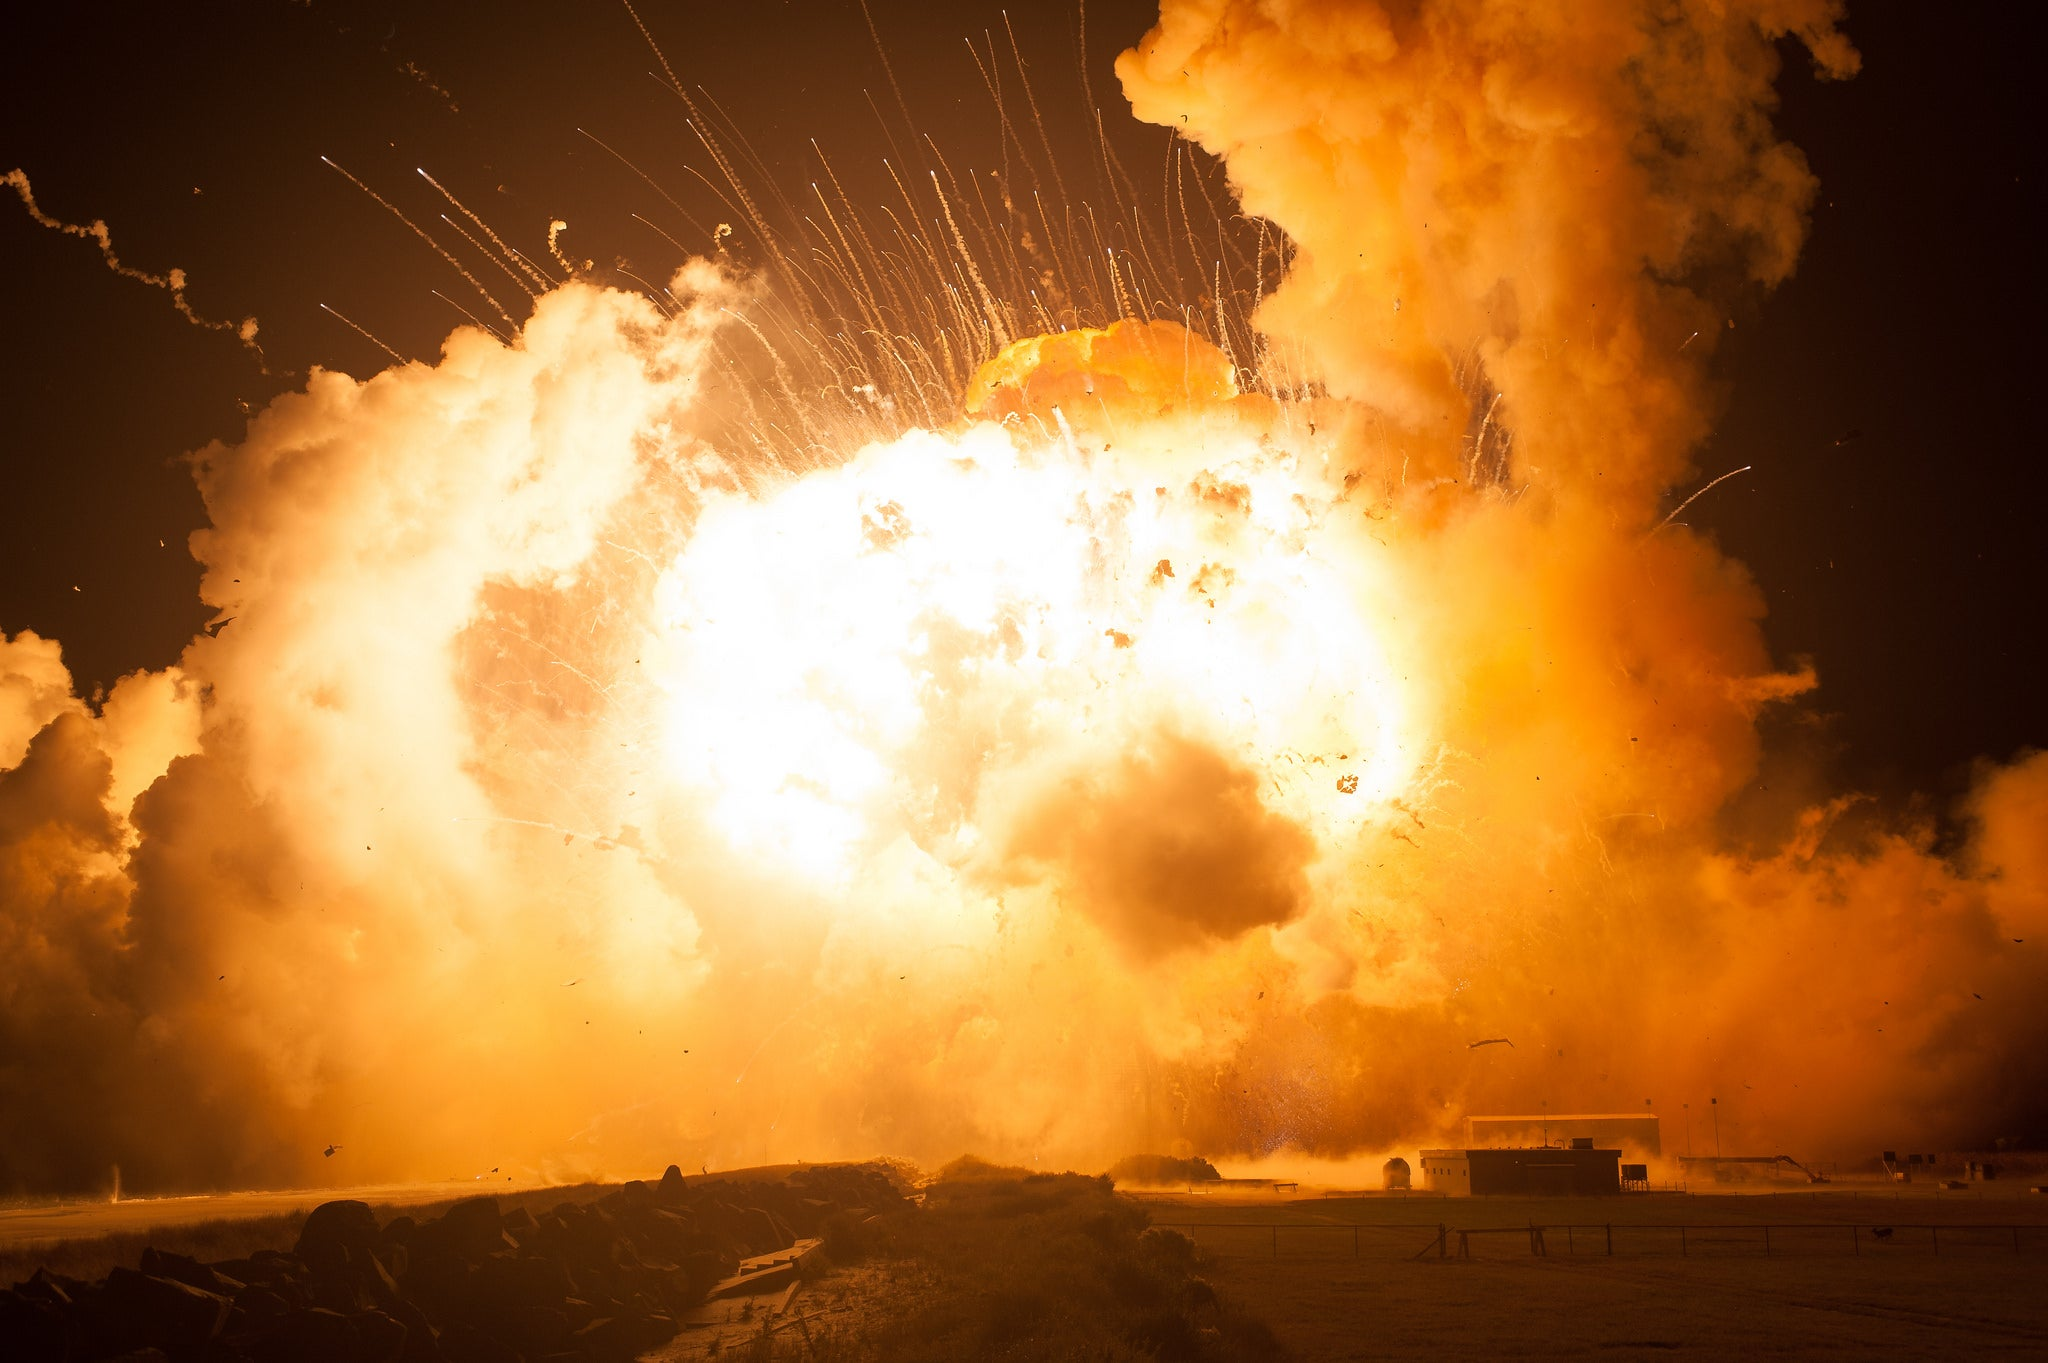 NASA Releases Harrowing New Photos of Last Year's Antares Rocket Explosion